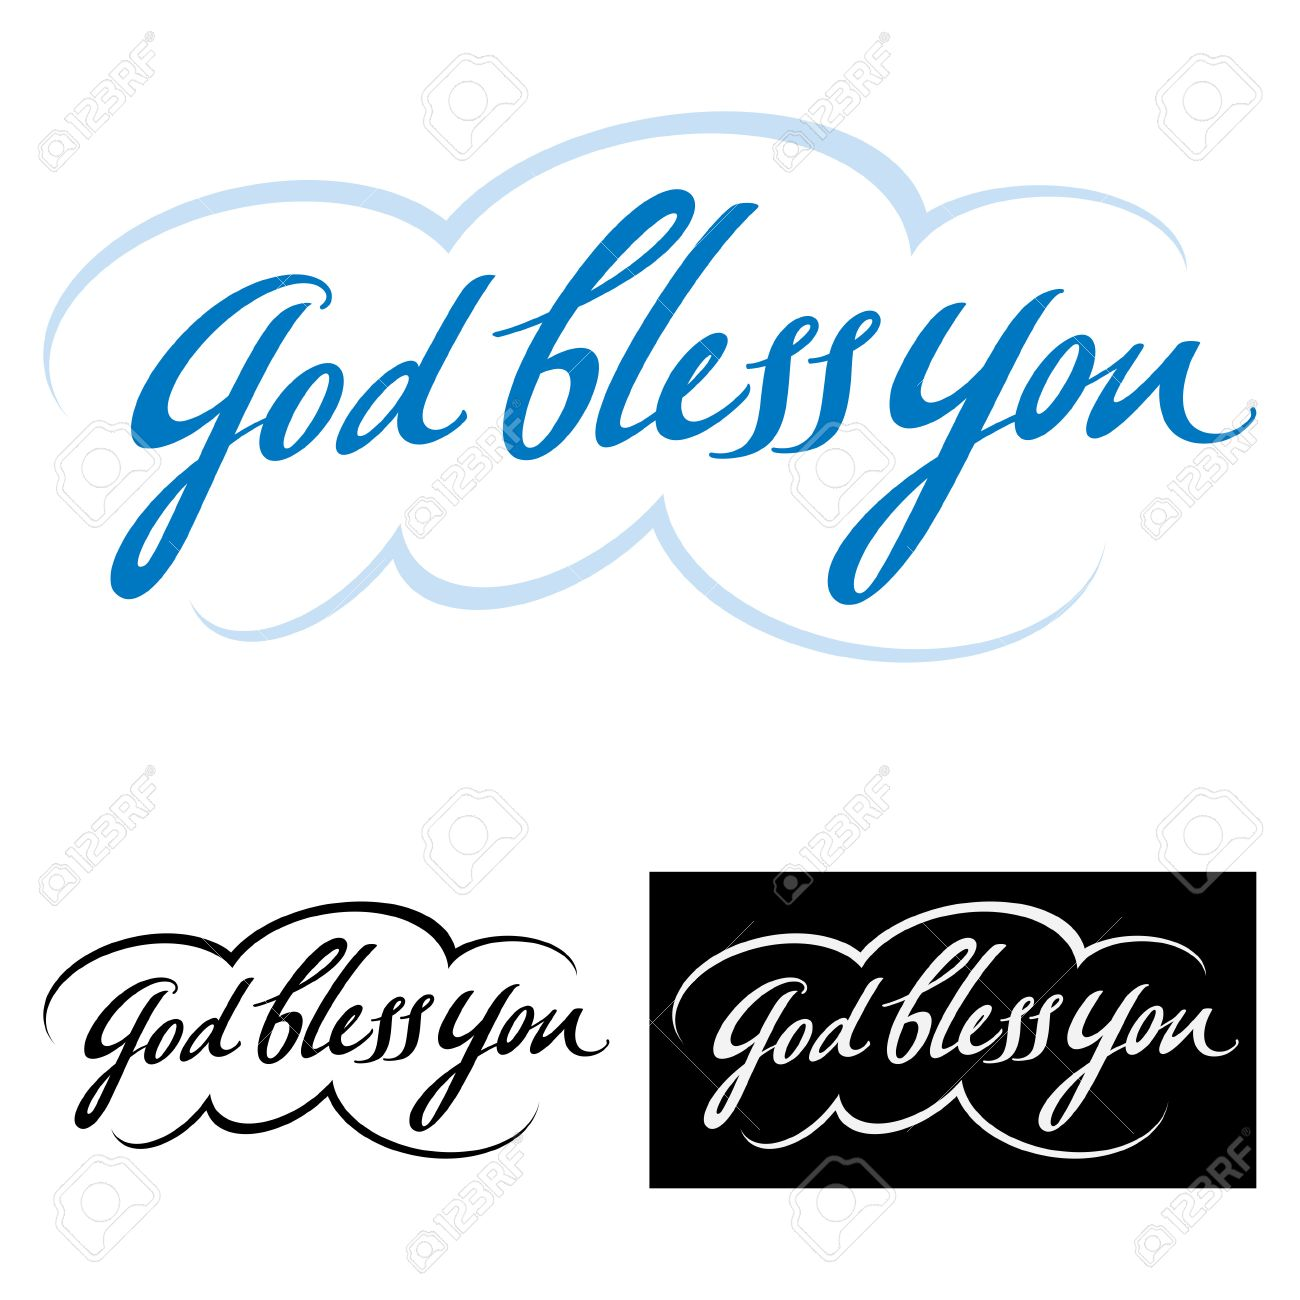 God Bless You Abstract Vector Word Phrase Good Wish And Blessing